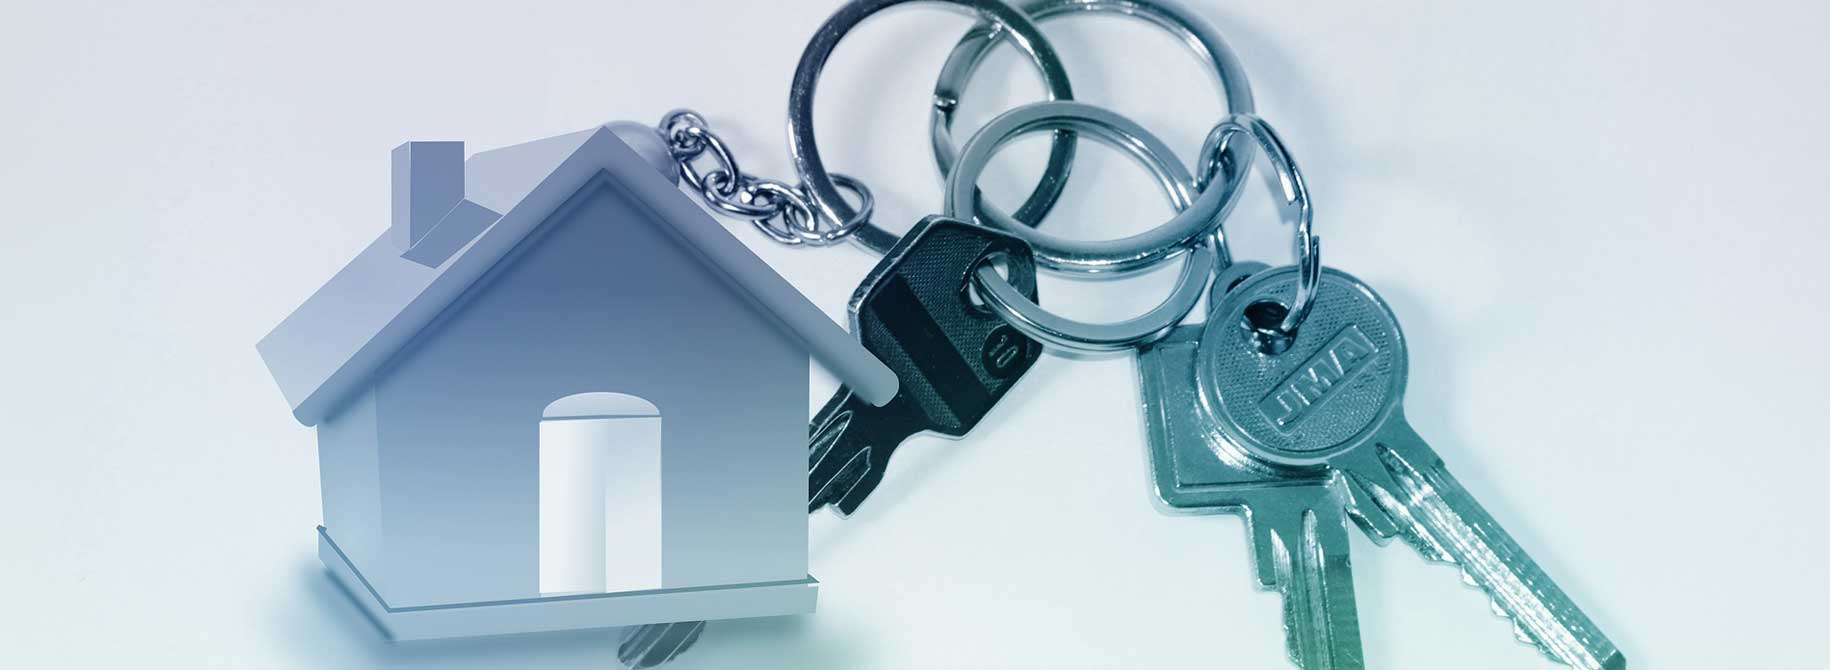 picture of home keys